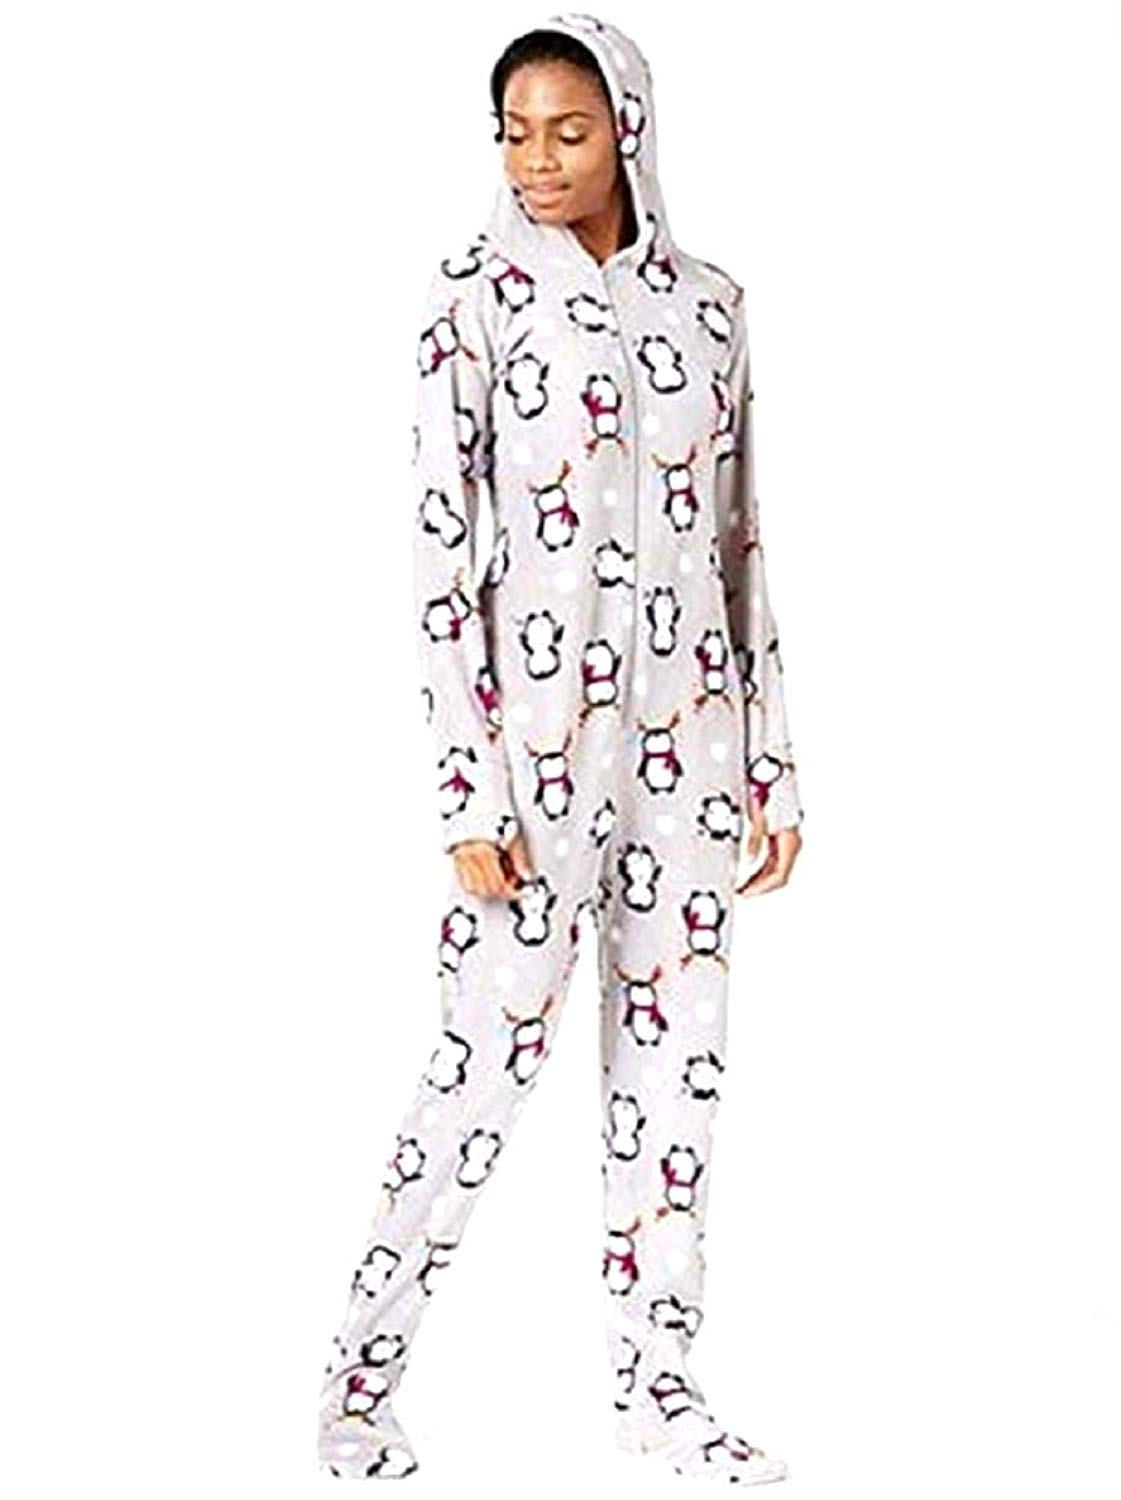 fd343c3b7d Get Quotations · Jenni by Jennifer Moore Hooded and Footed Fleece Onesie  Pajamas